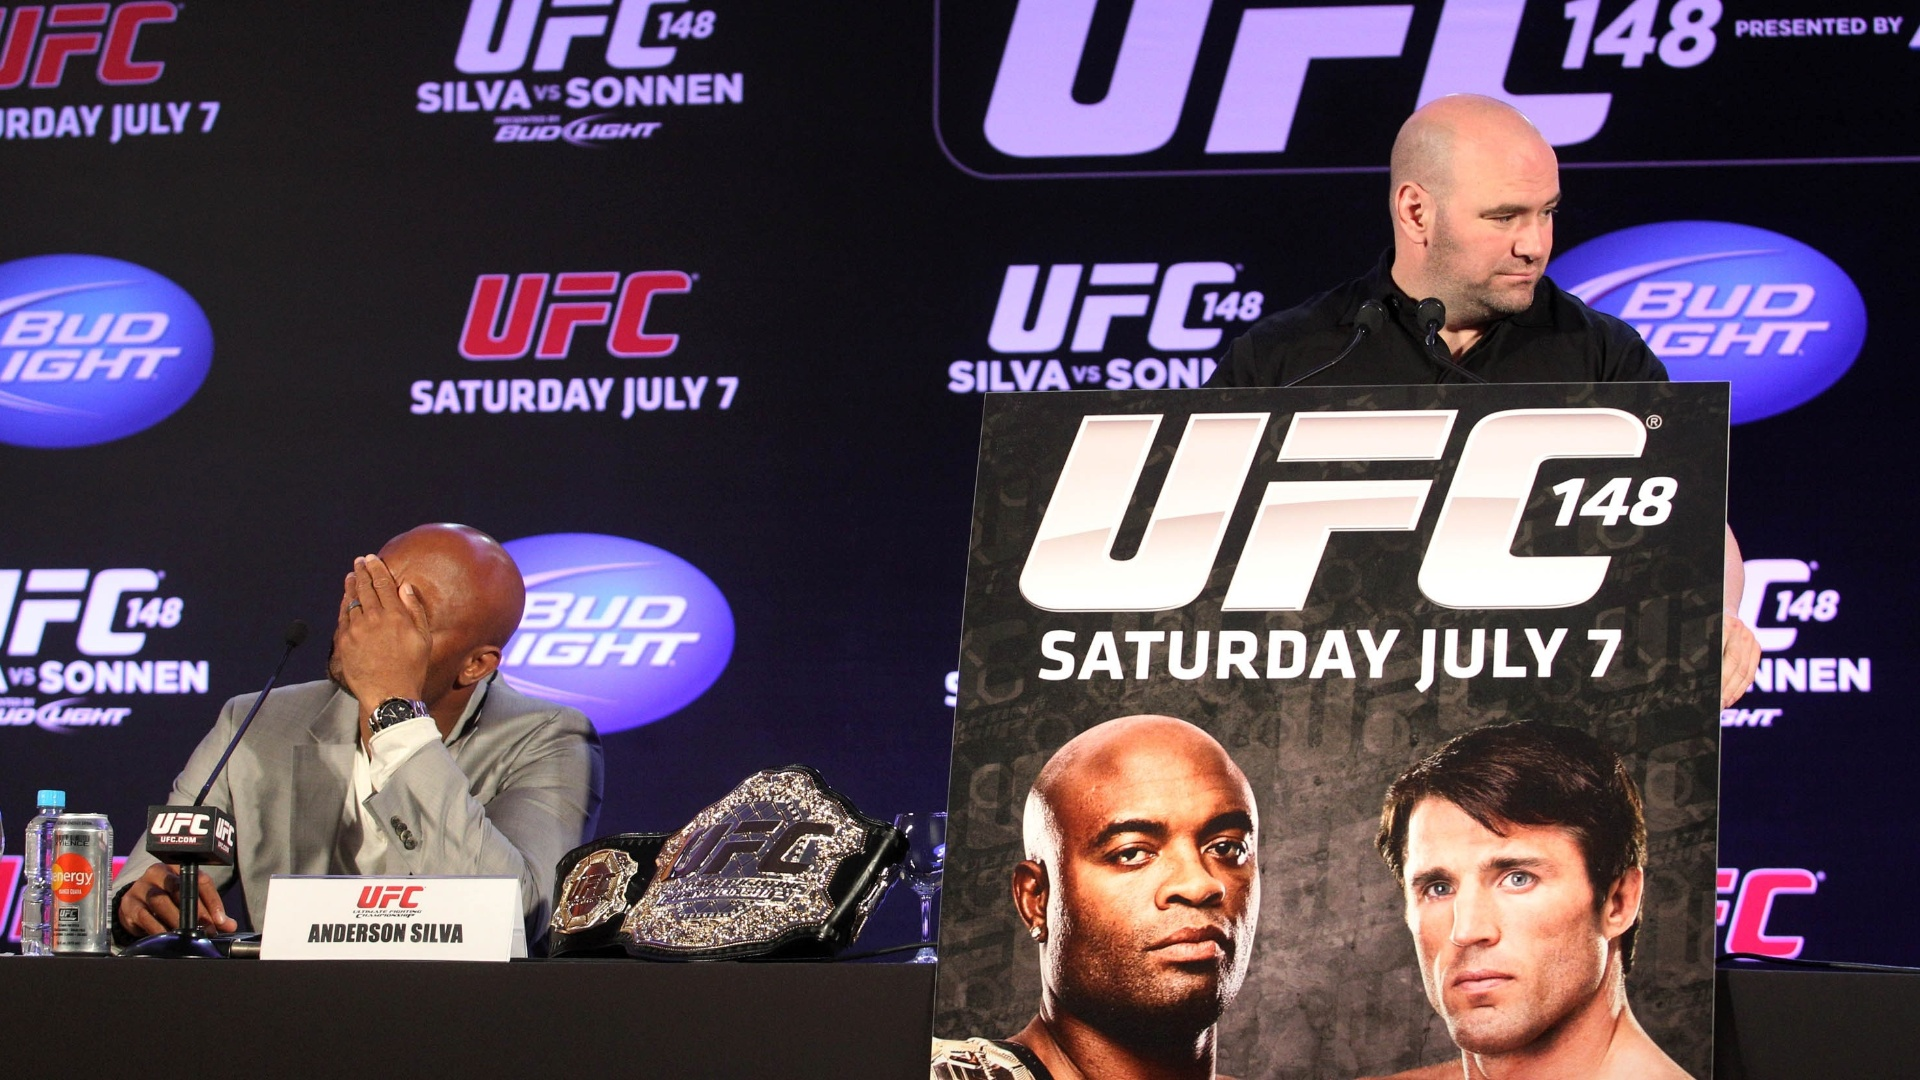 Dana White anunciou a mudana do duelo entre Sonnen e Anderson Silva para Las Vegas por falta de estrutura no Brasil